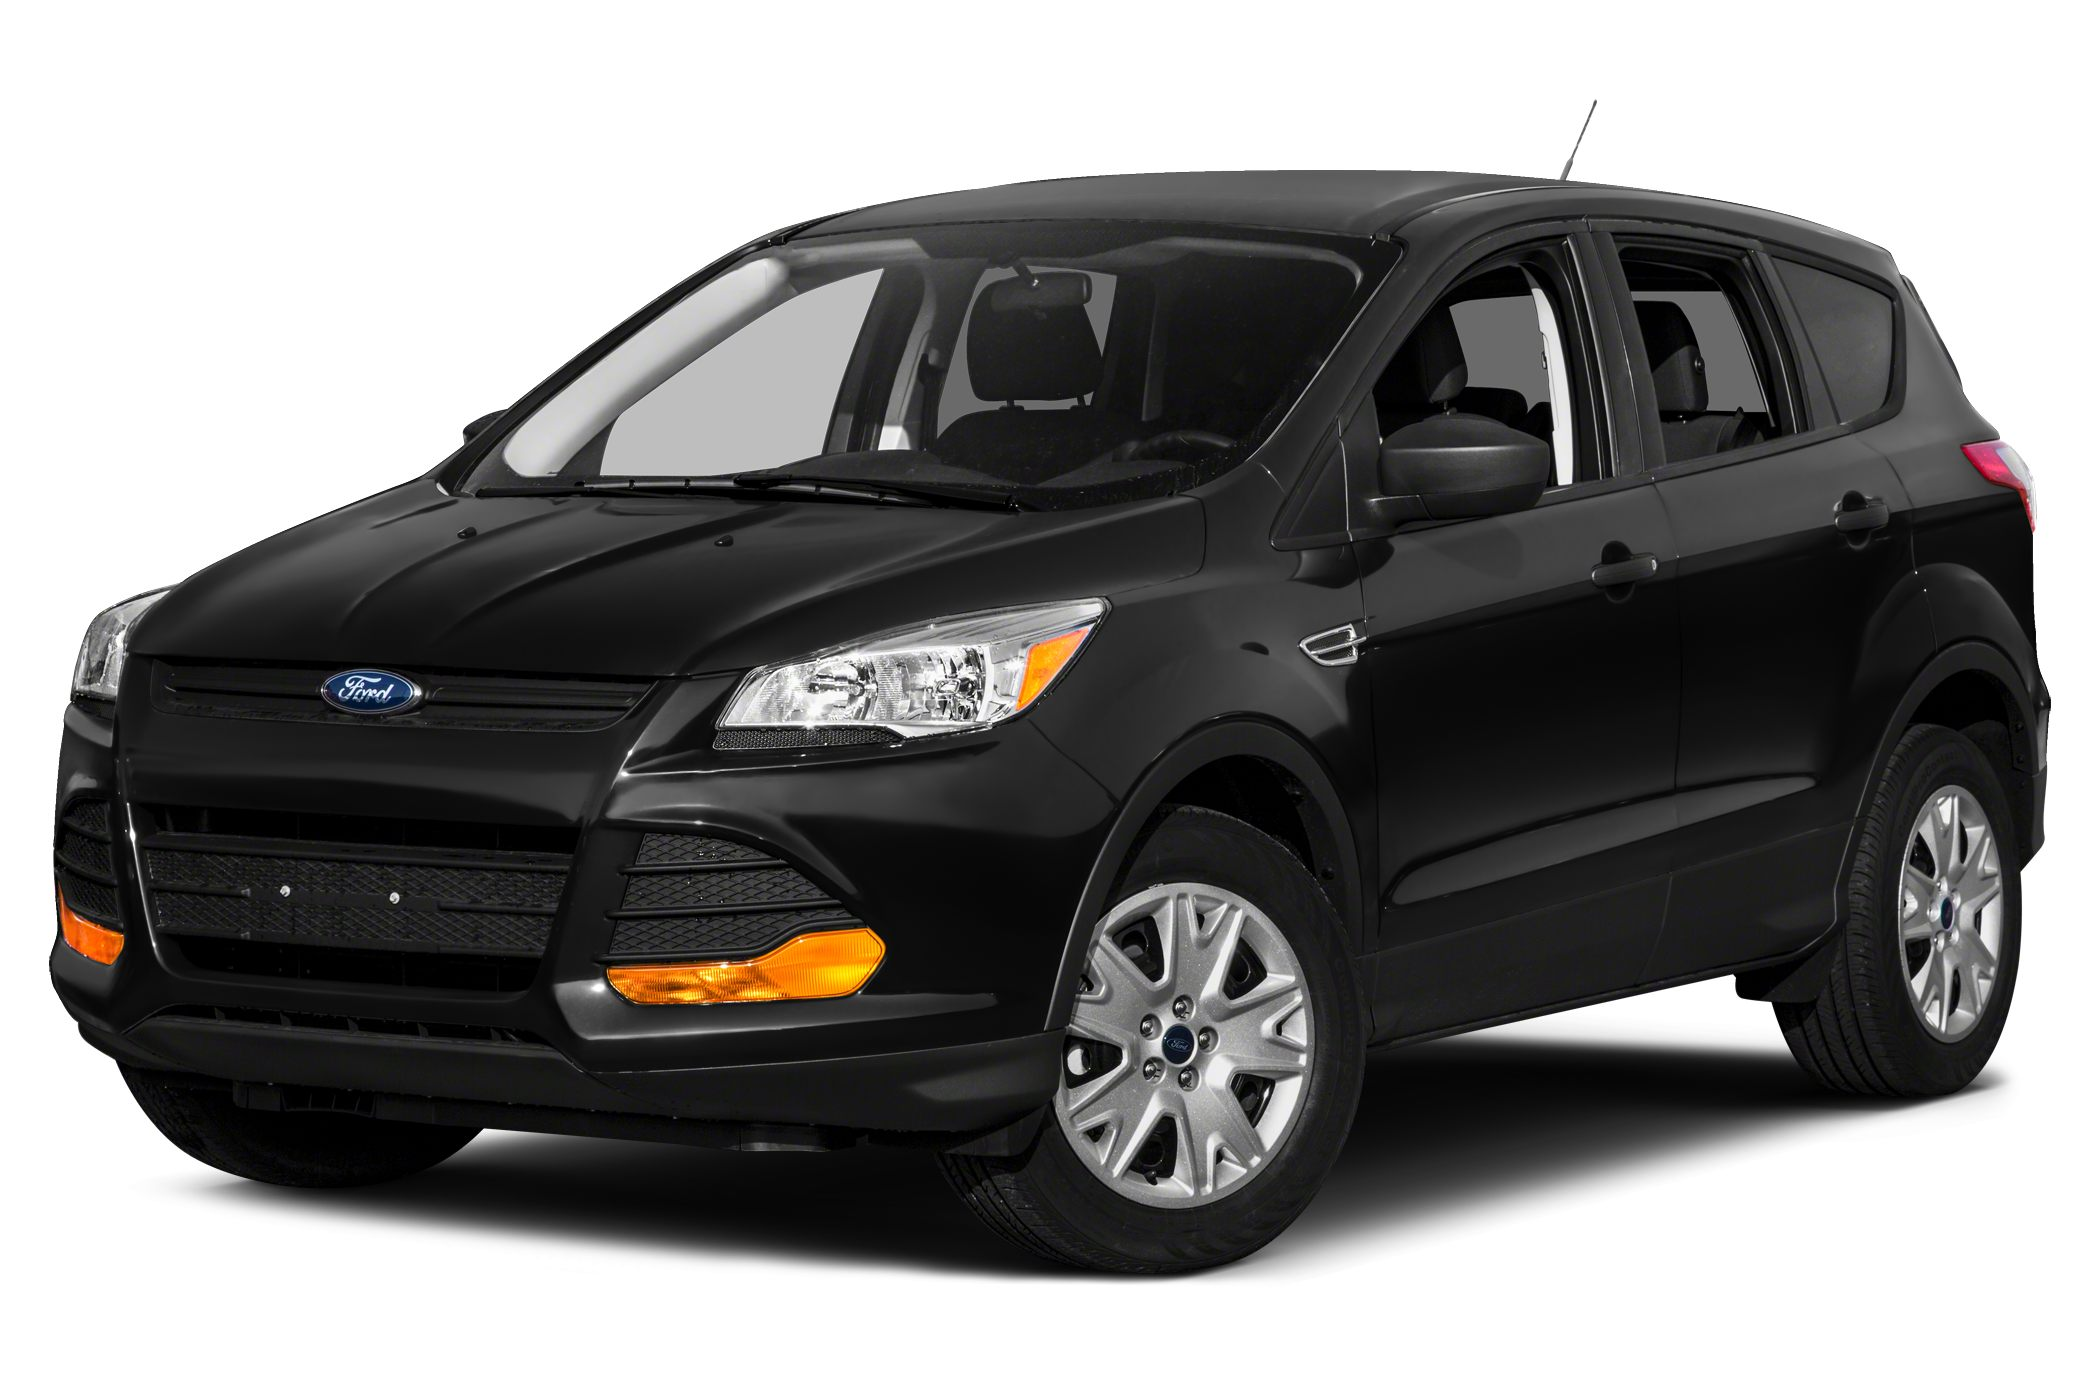 2016 Ford Escape SE Our Cost reflects all applicable manufacturer rebates andor incentives based